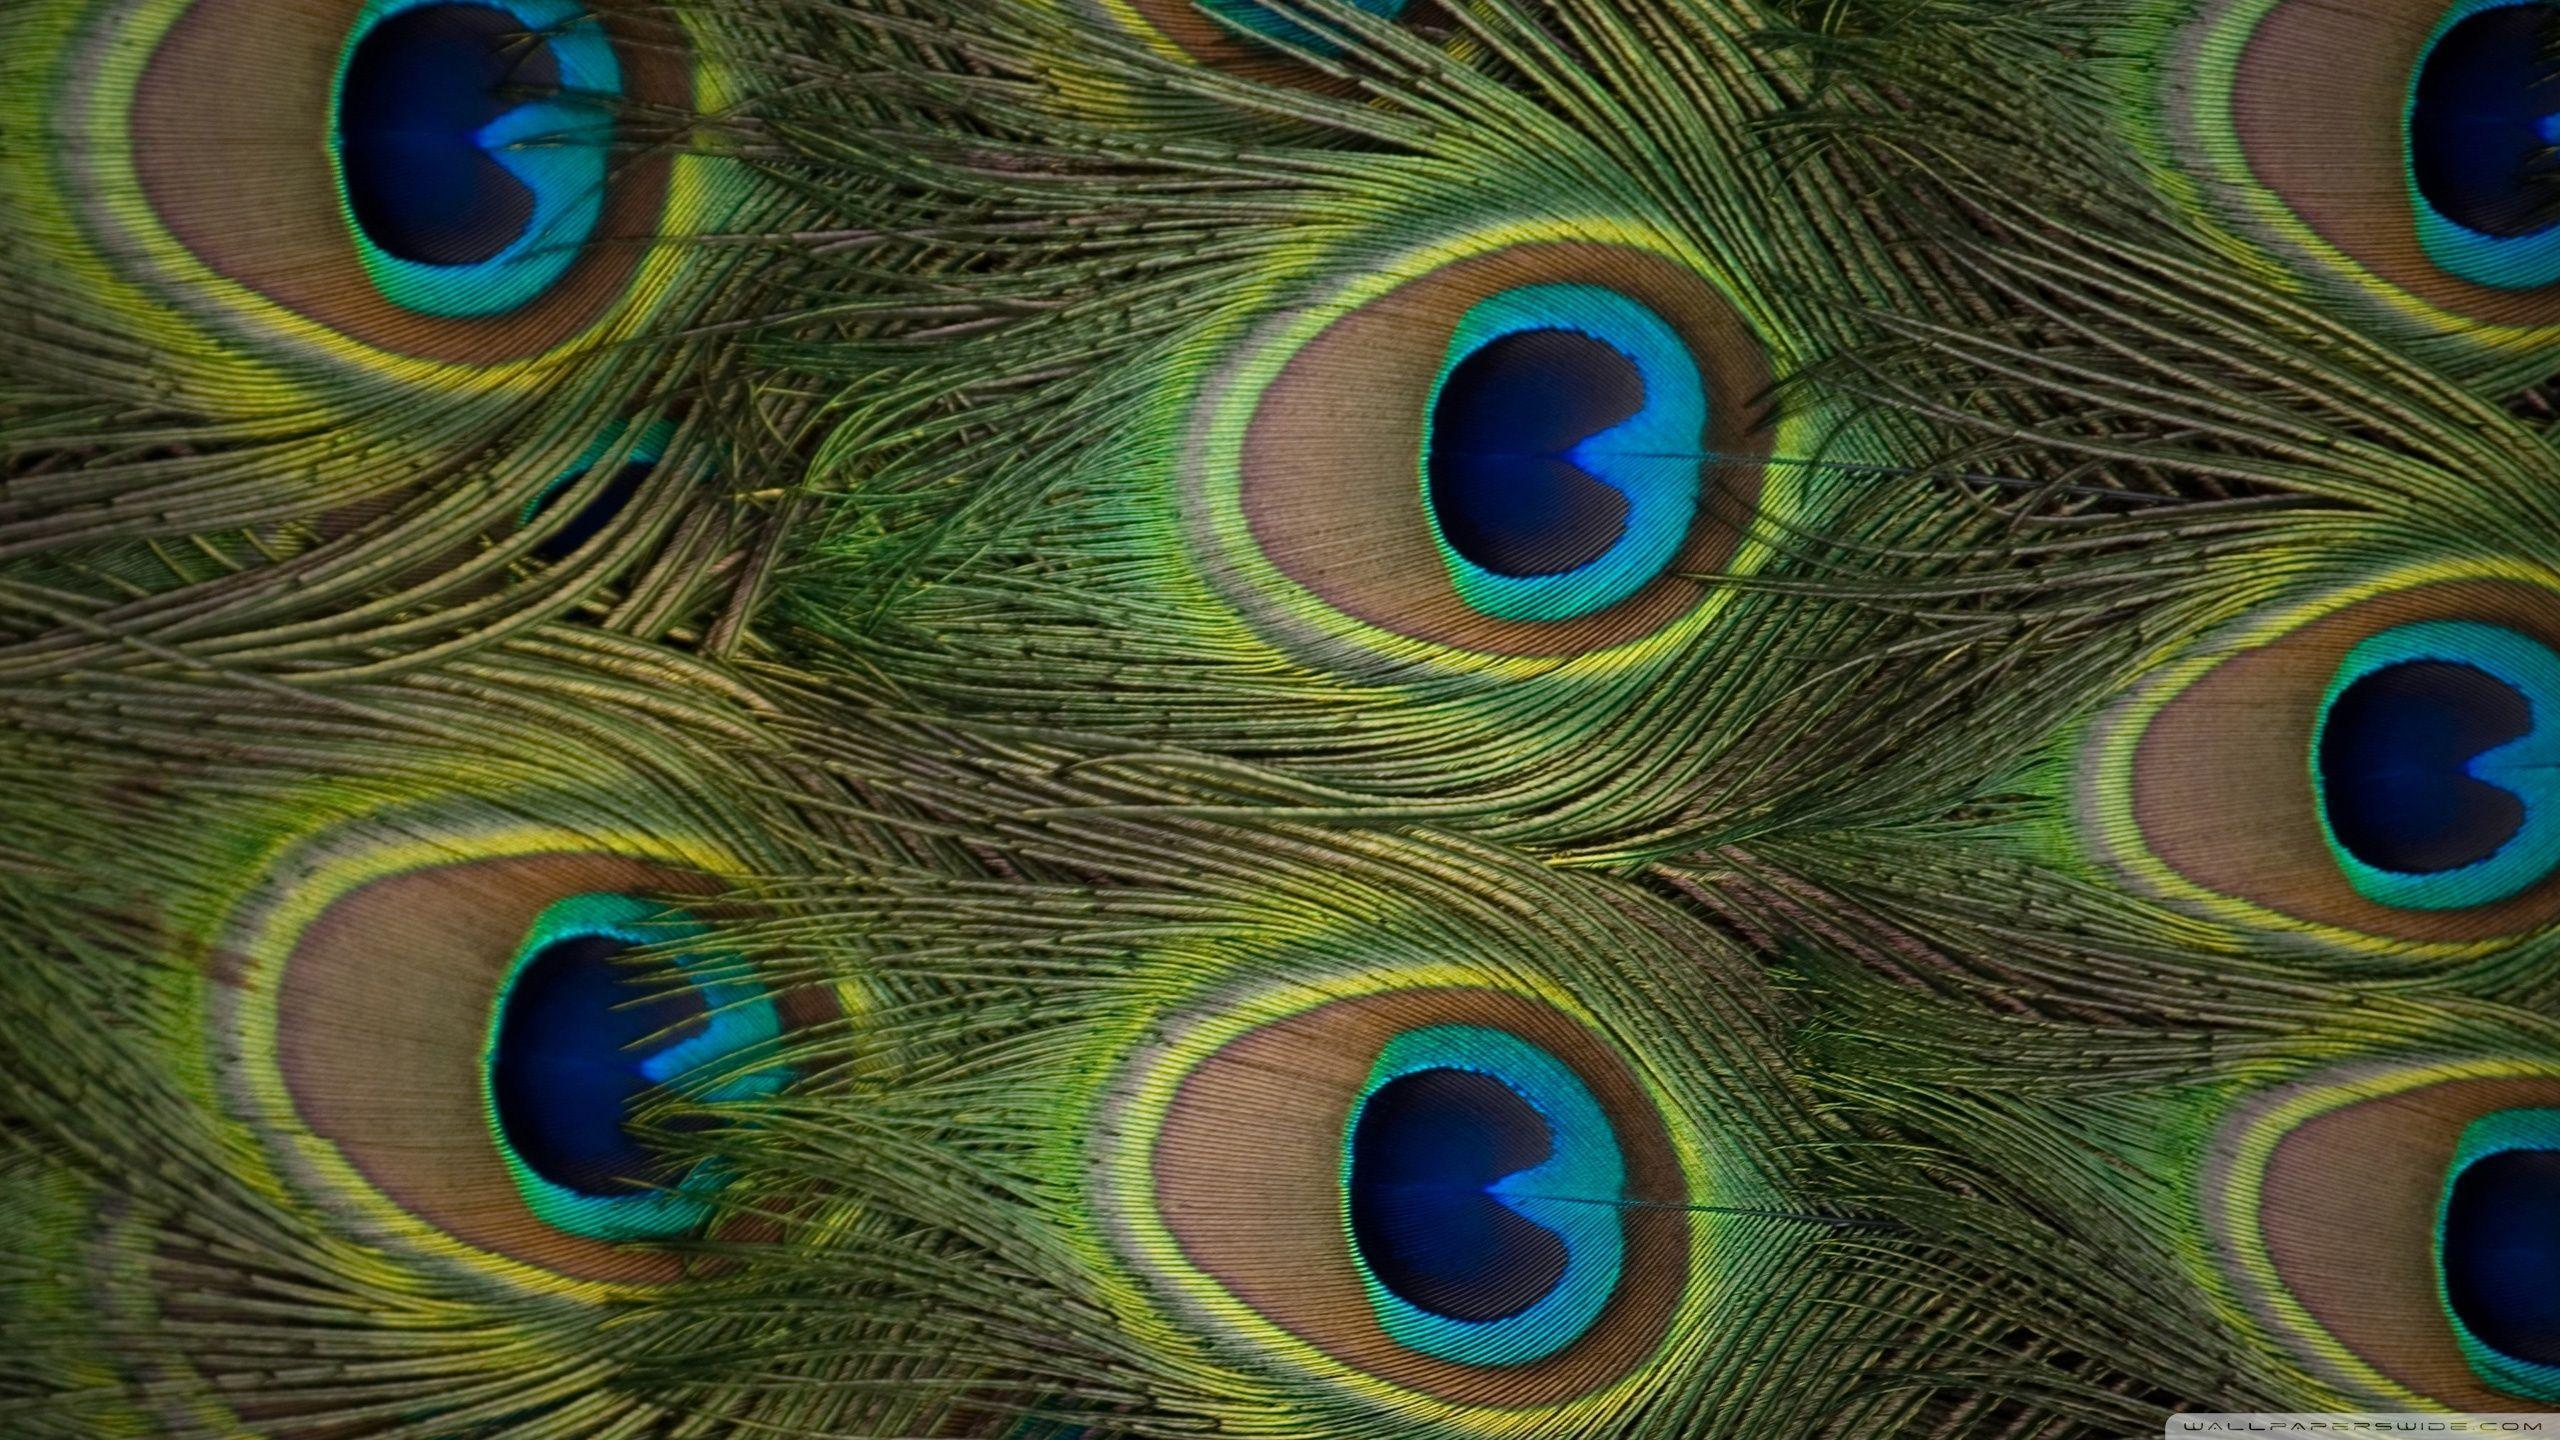 Wallpapers Of Peacock Feathers HD 2016